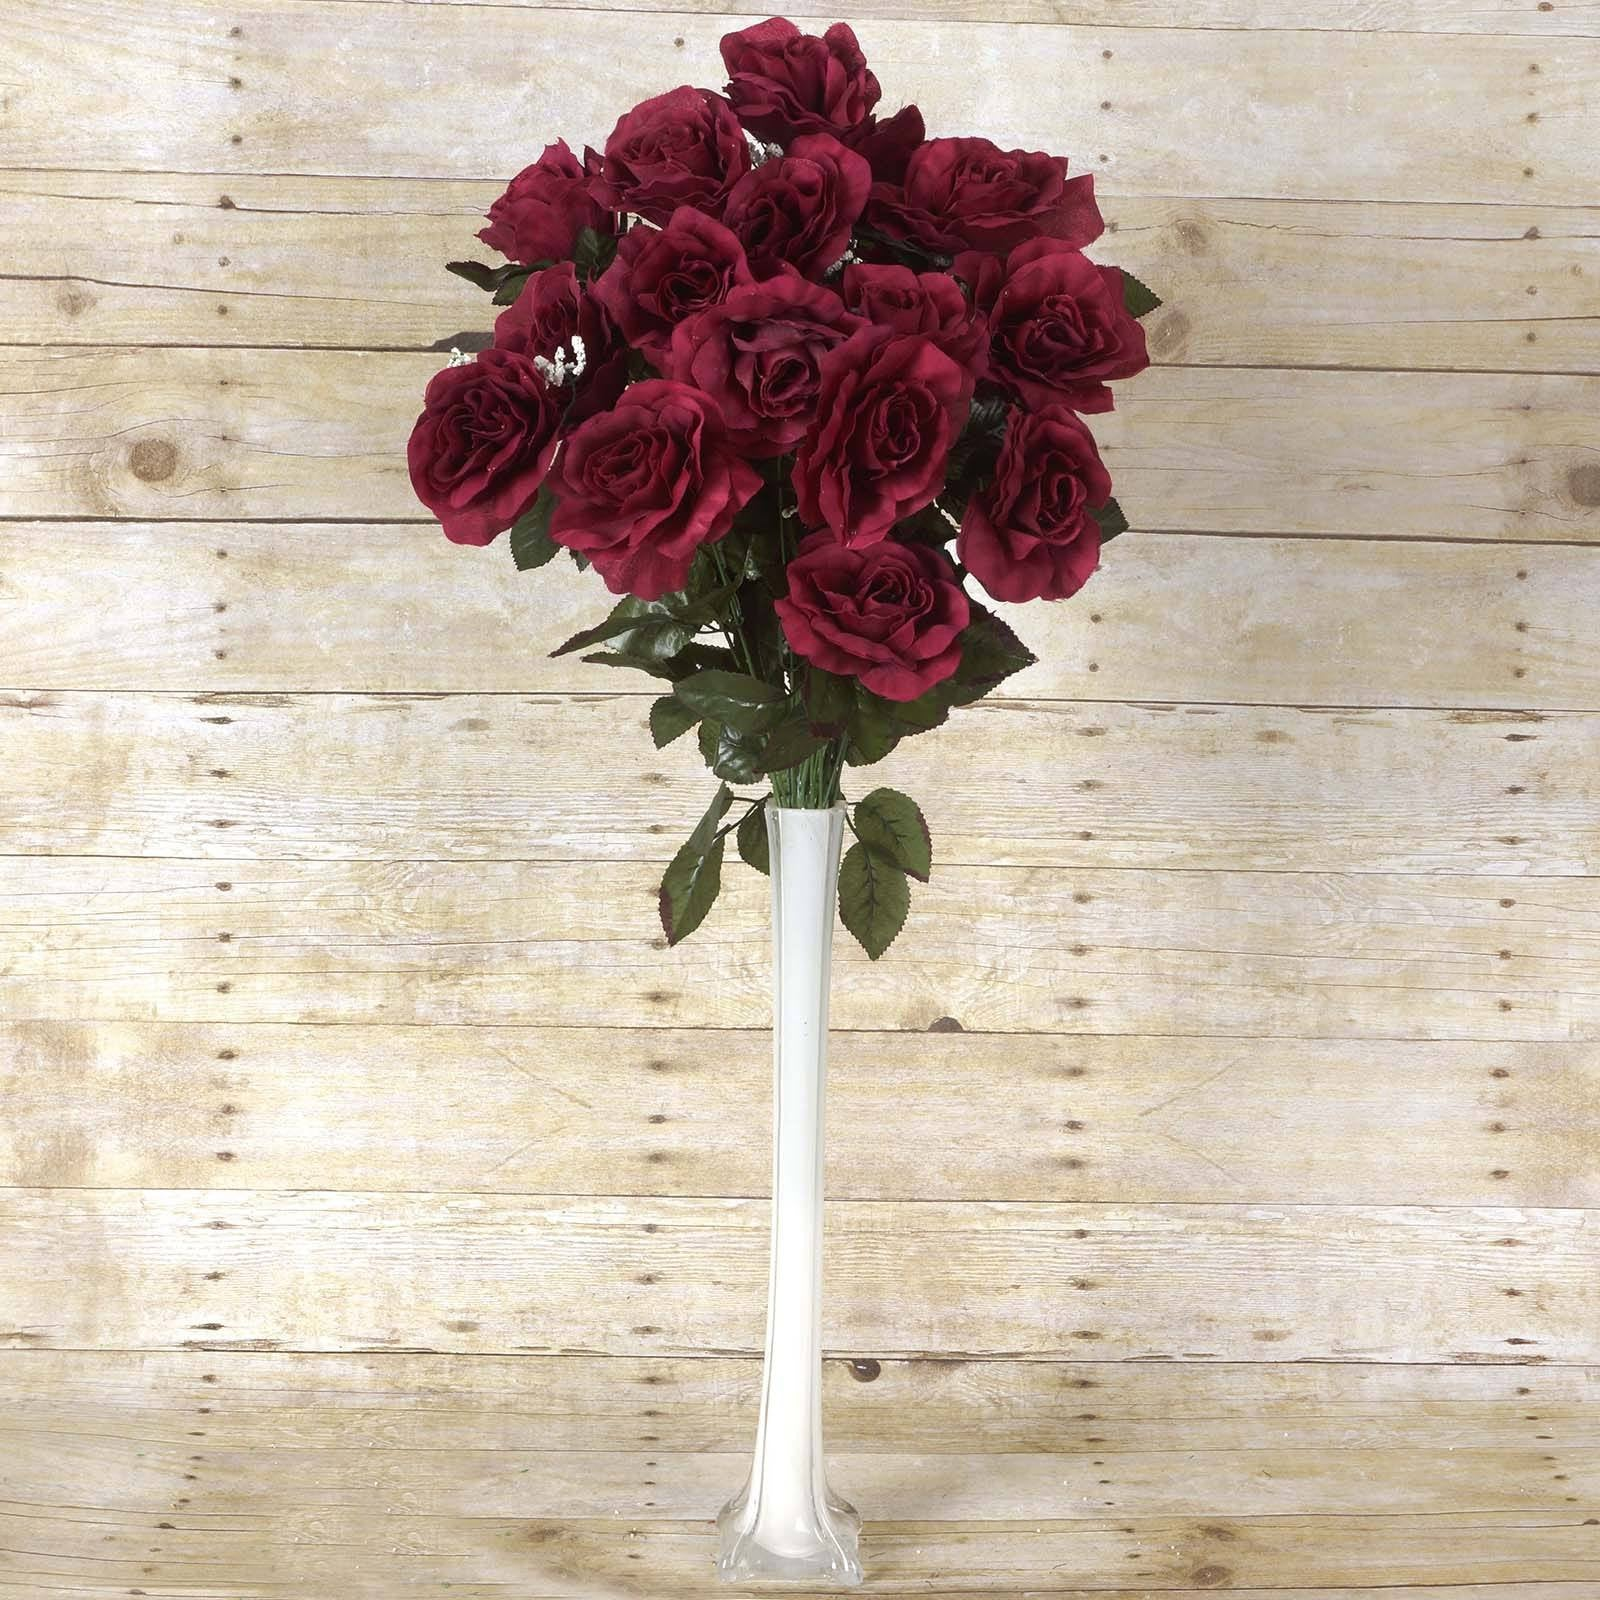 96 Artificial Burgundy Giant Silk Open Roses Wedding Bridal Bouquet ...